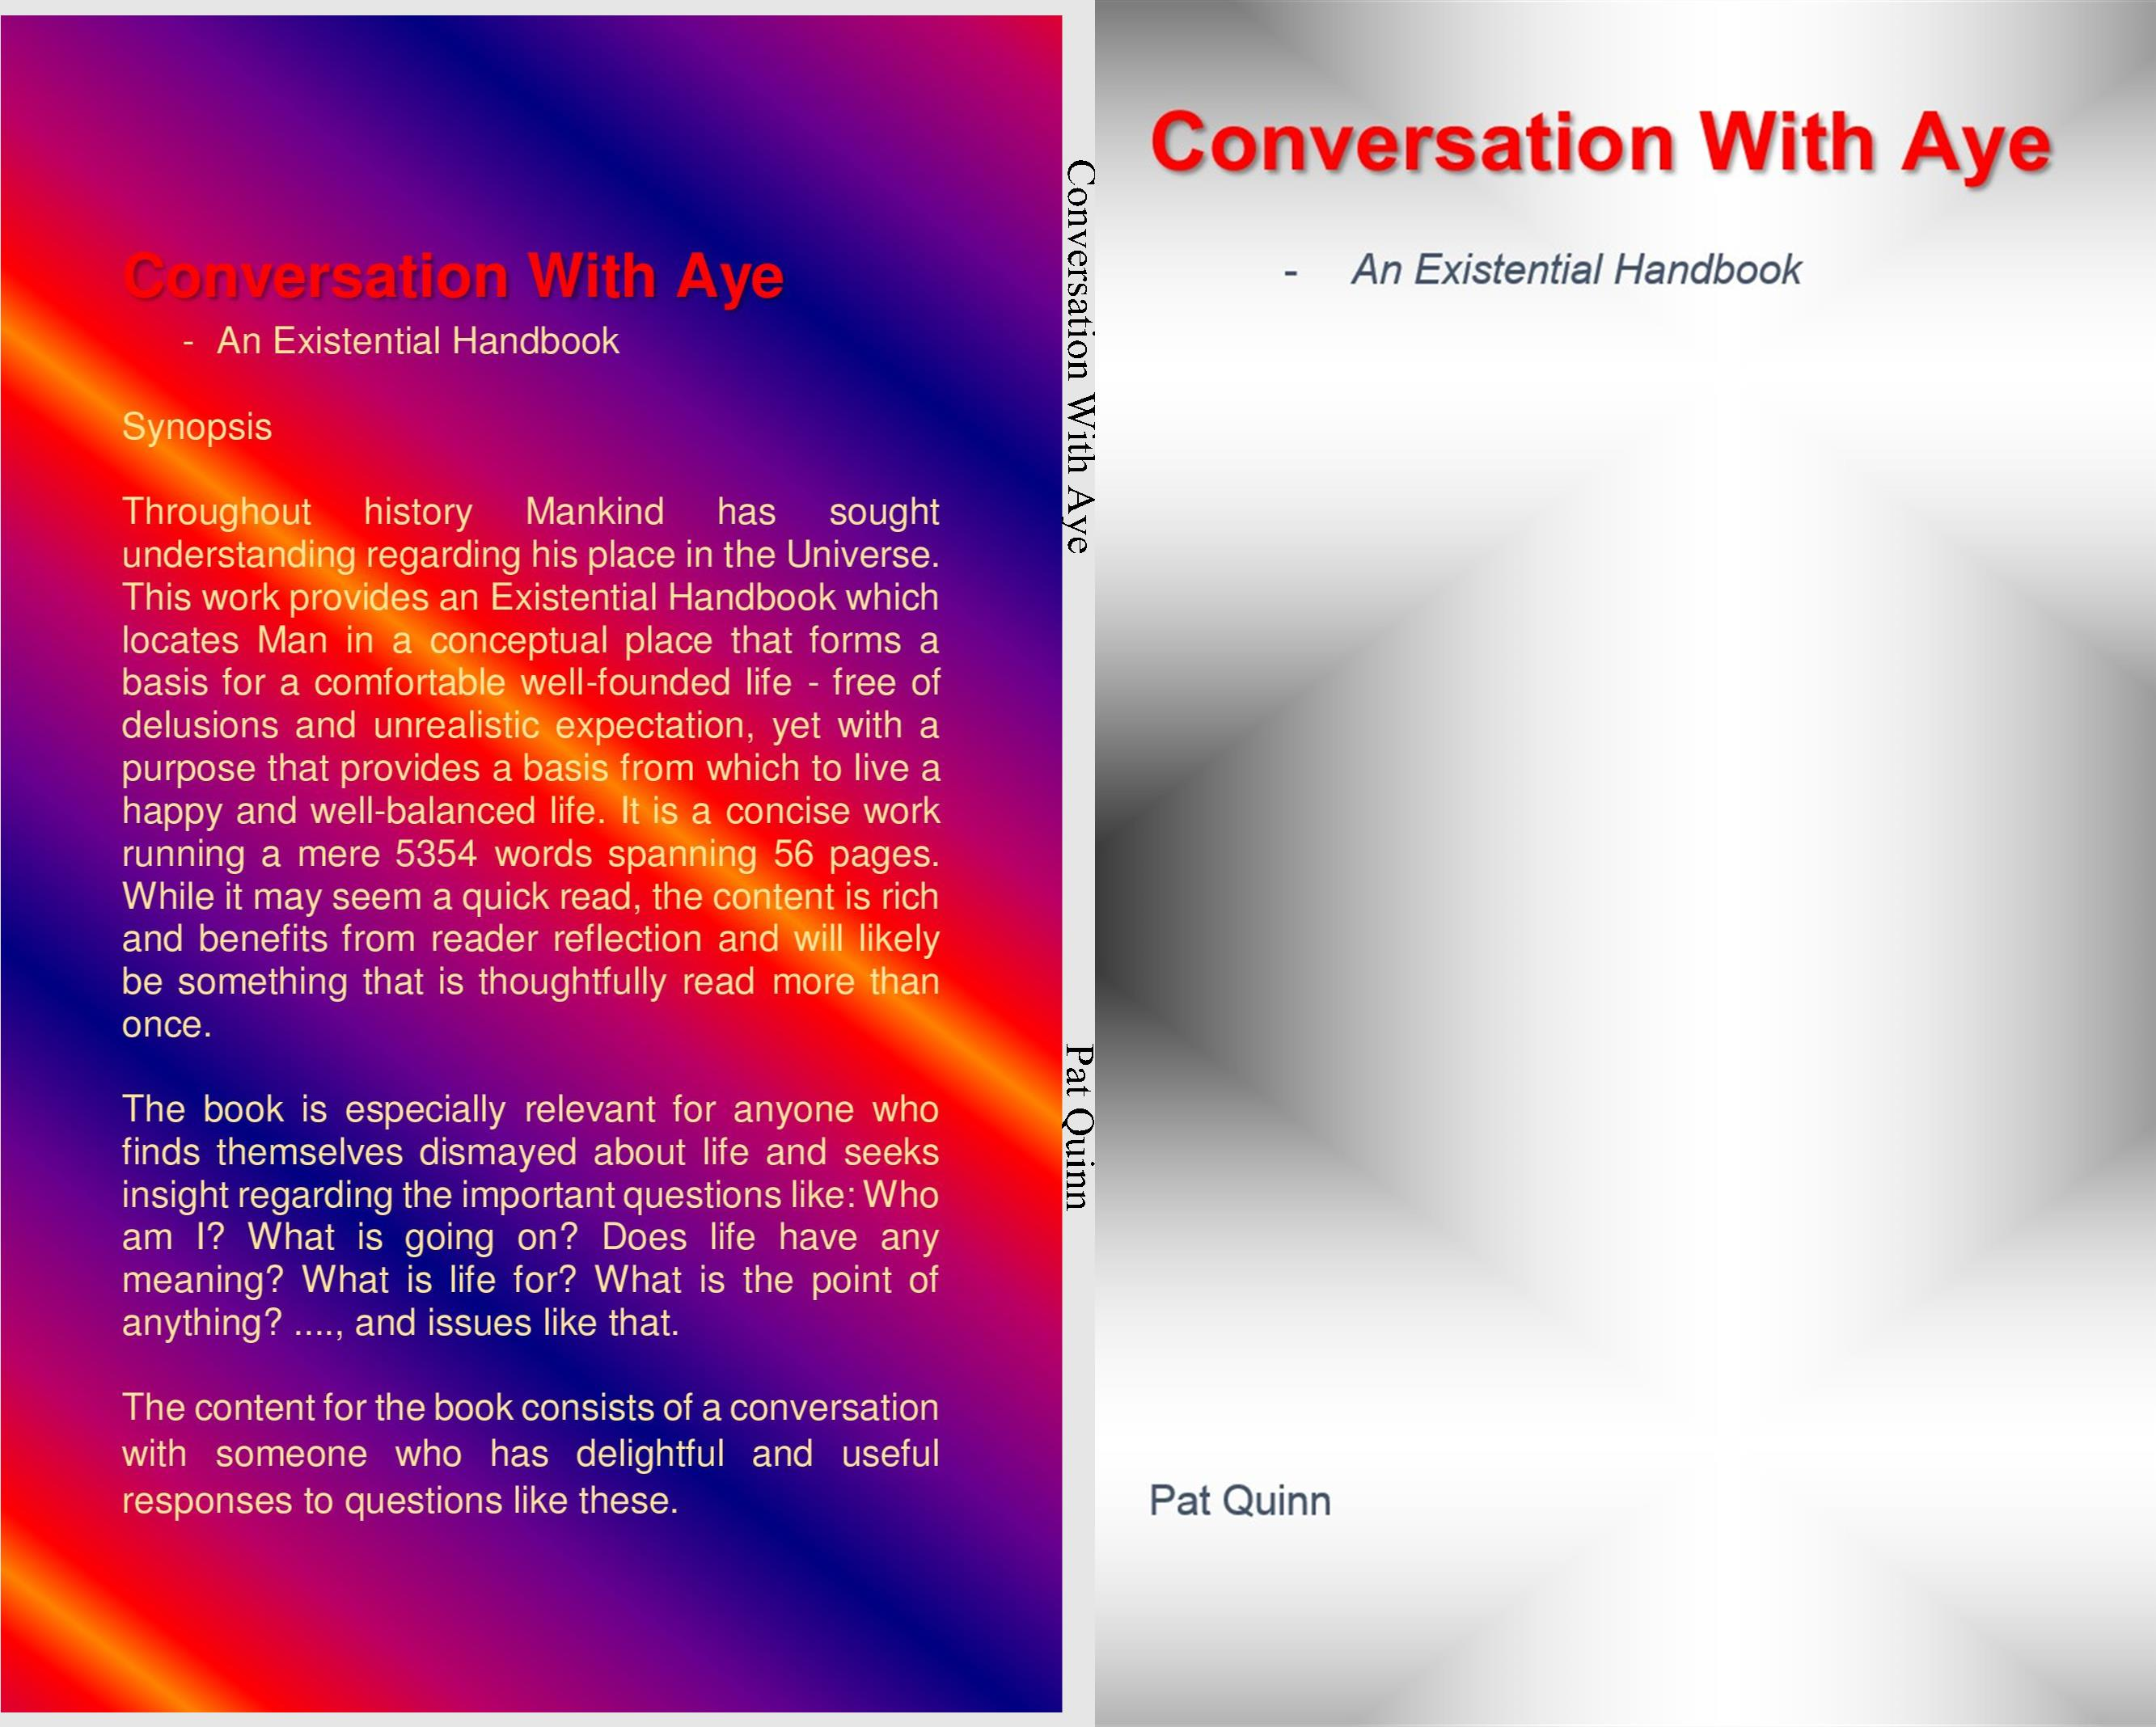 Conversation With Aye - An Existential Handbook cover image